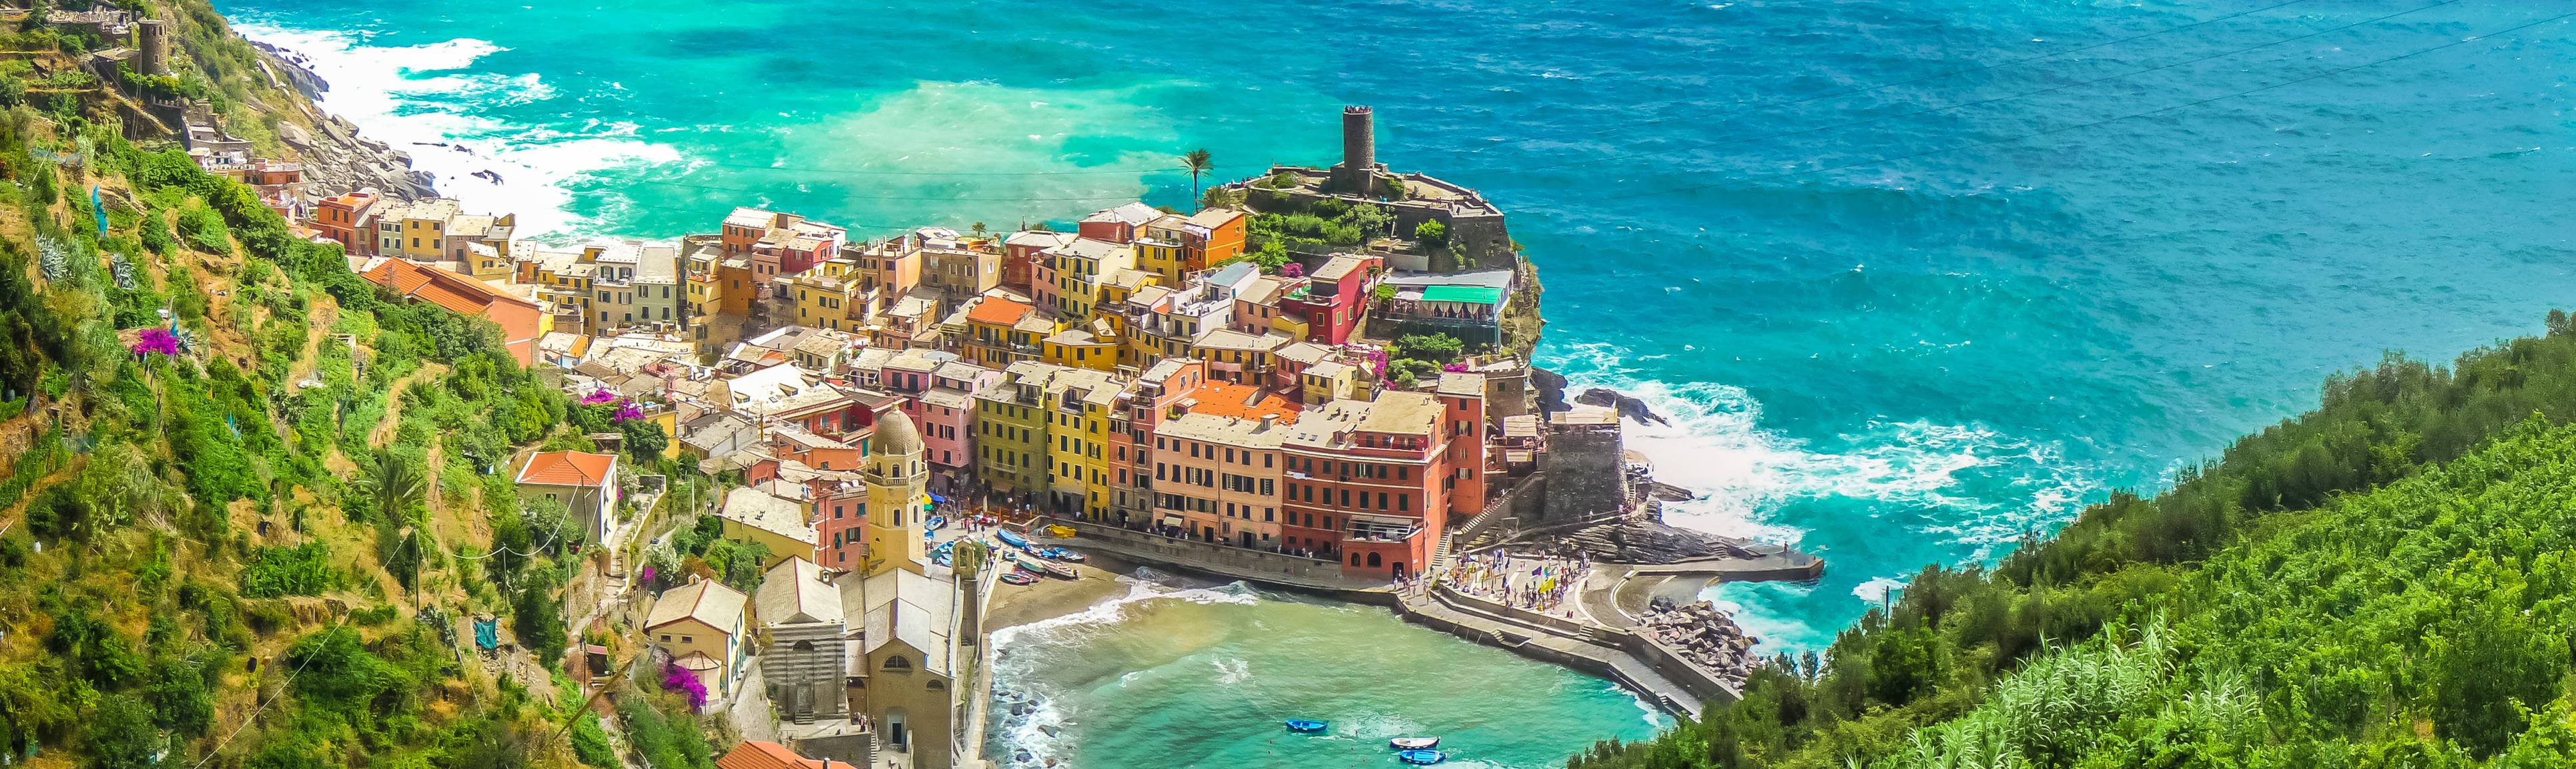 View from above of Cinque Terre and the Ligurian Sea